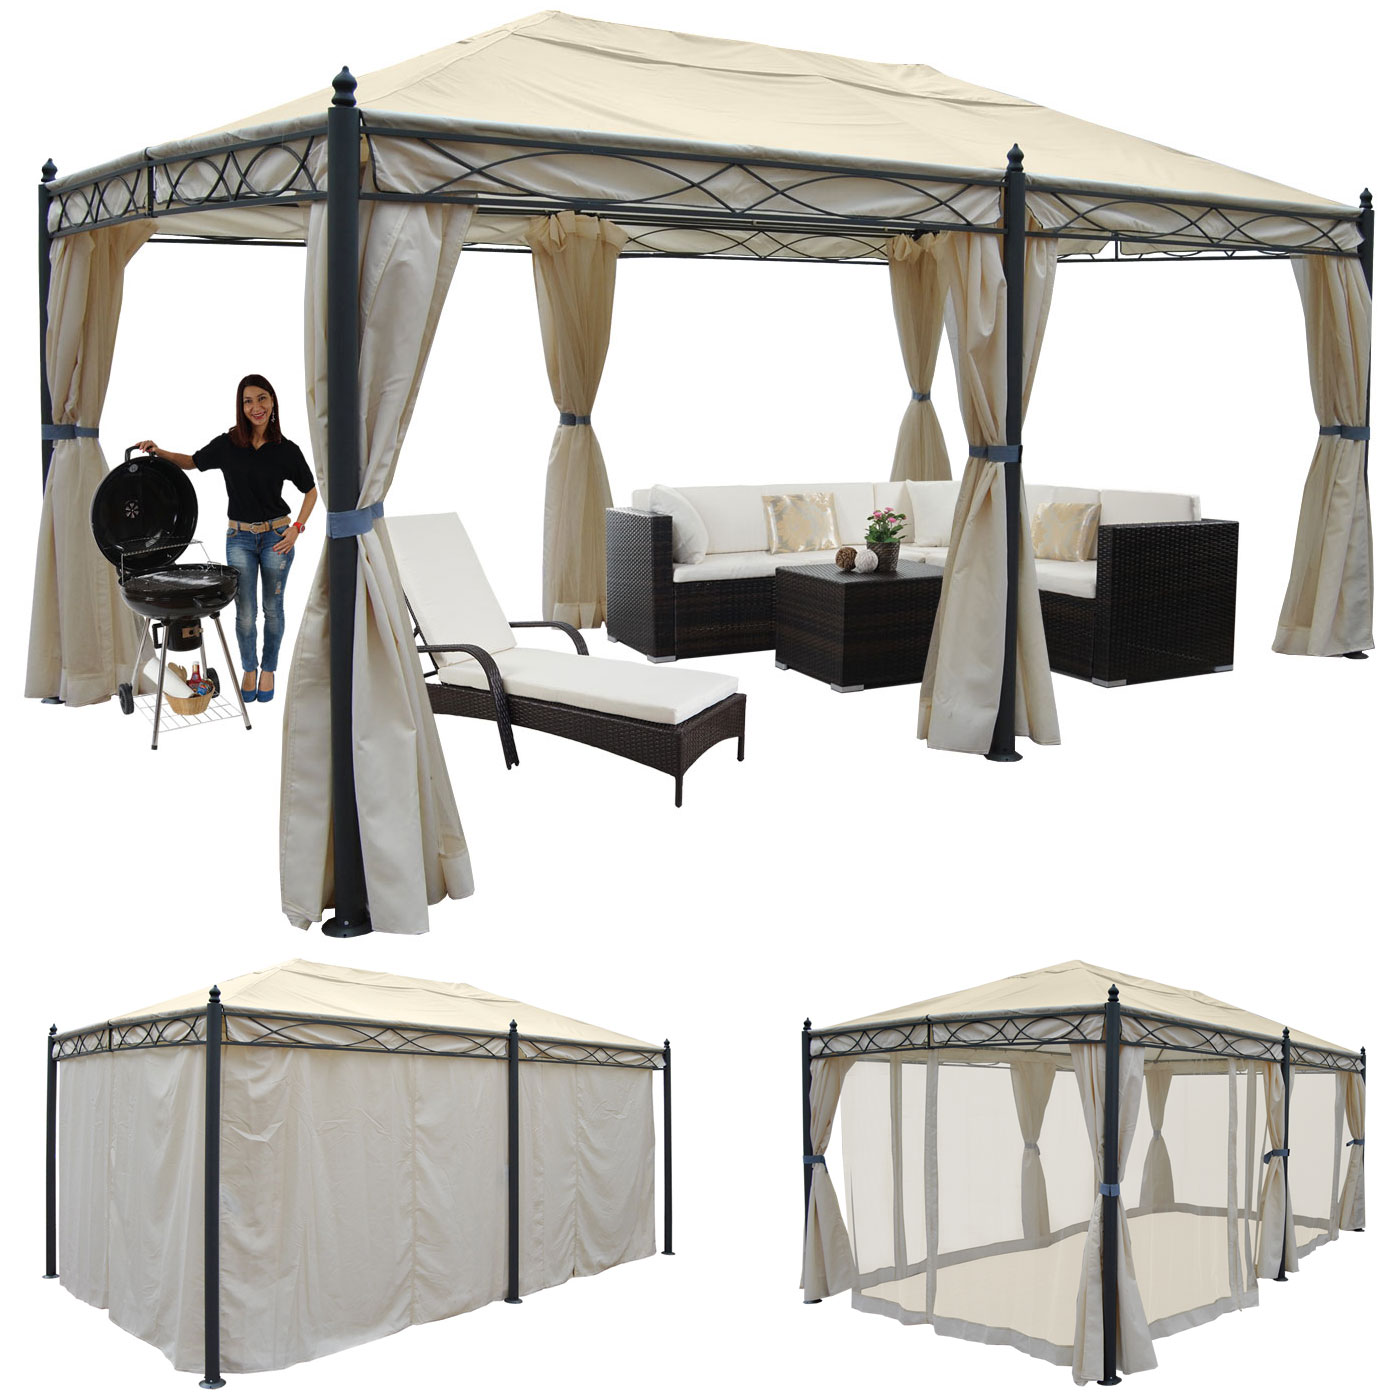 pergola pavillon stabiles 7cm gestell 5x3m creme mit seitenwand moskitonetz garten. Black Bedroom Furniture Sets. Home Design Ideas